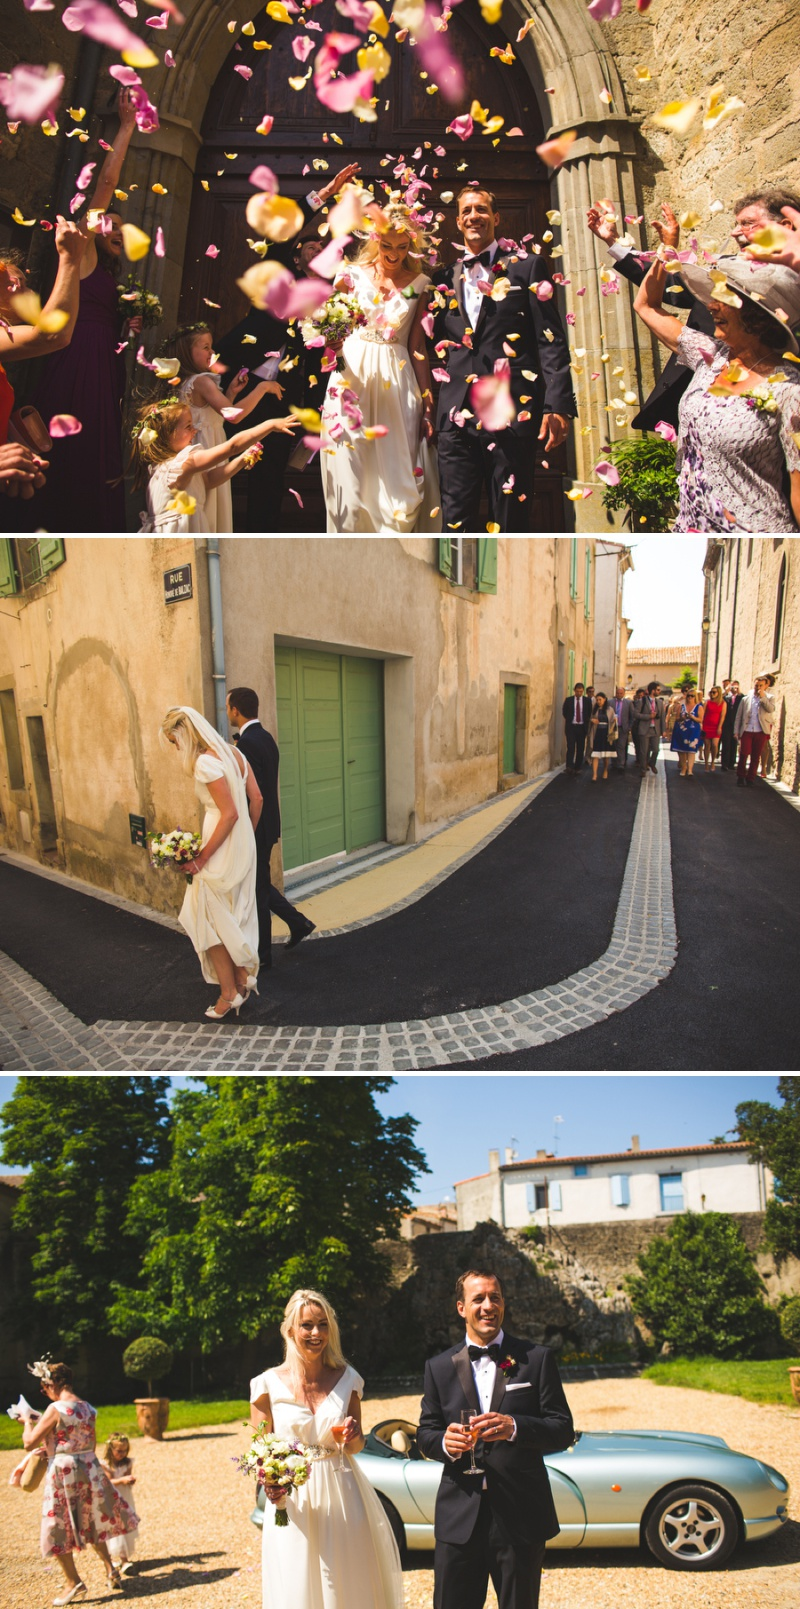 A Classically Elegant Black Tie Destination Wedding At Château de Pennautier In France With A J.Crew Vintage Wedding Dress, A Wild Rose And Peony Bouquet And A French Croquembouche